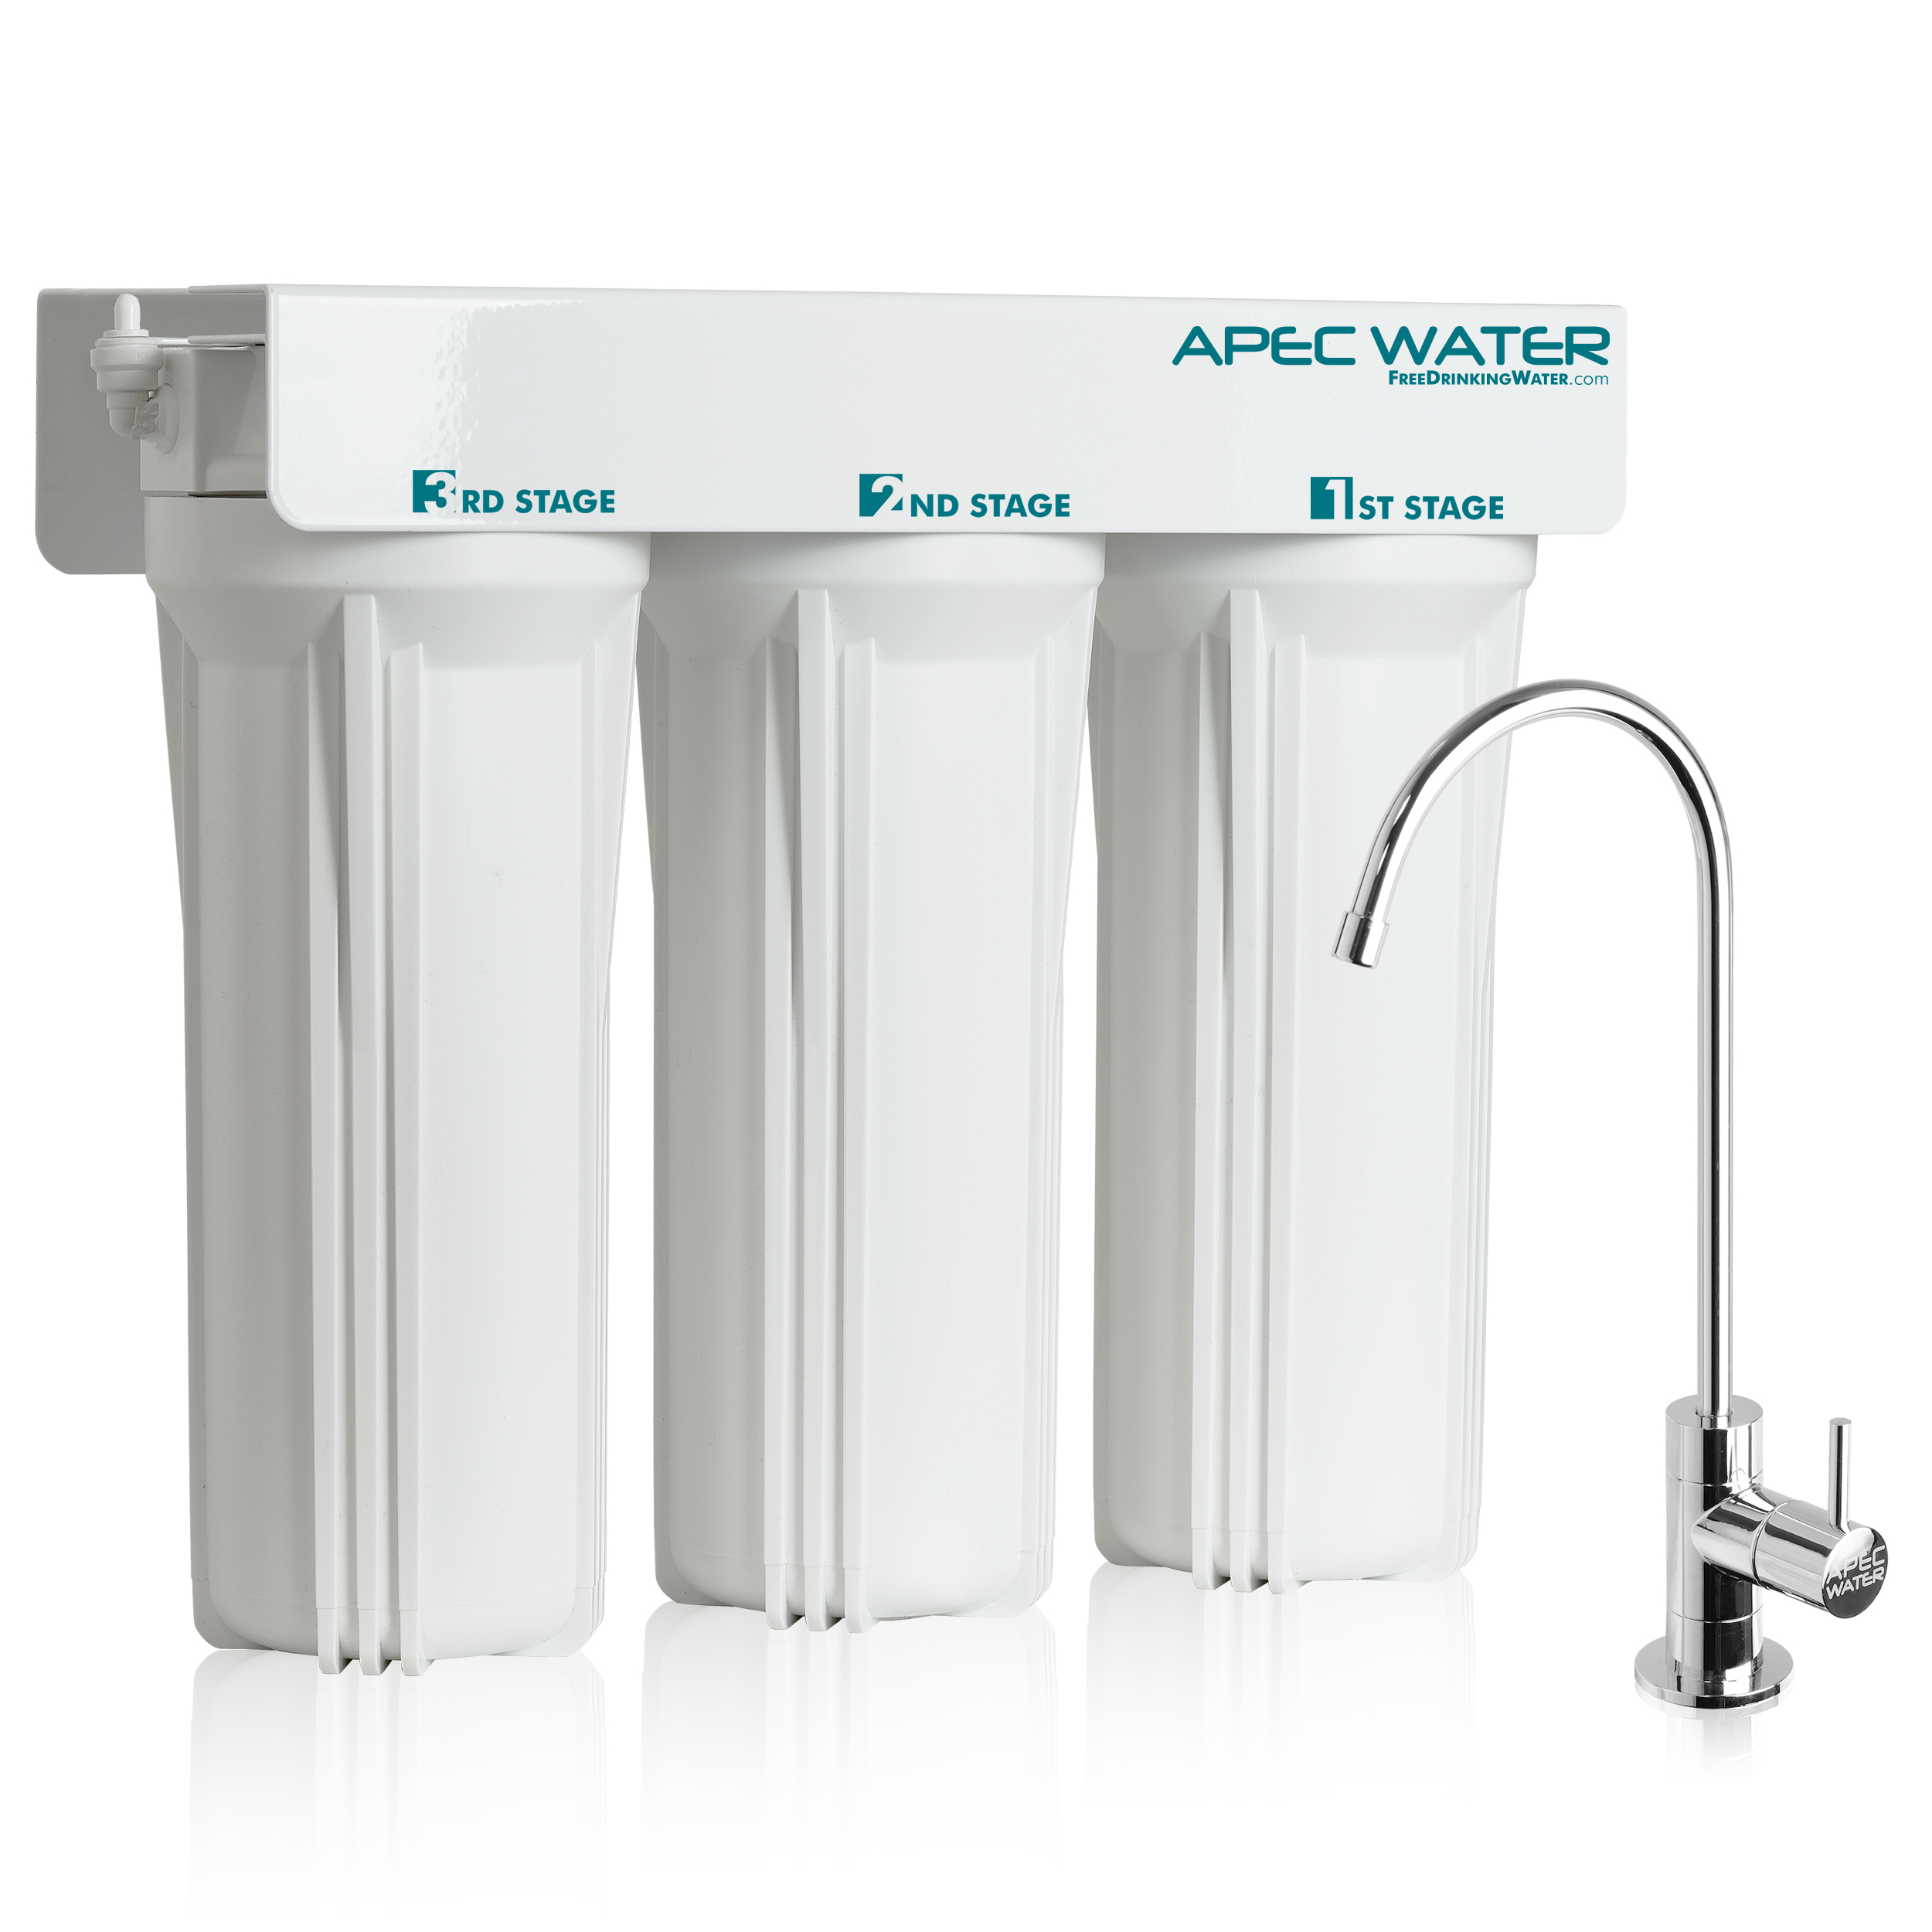 APEC - Super Capacity 3 Stage Under Counter Water Filtration System (WFS-1000)